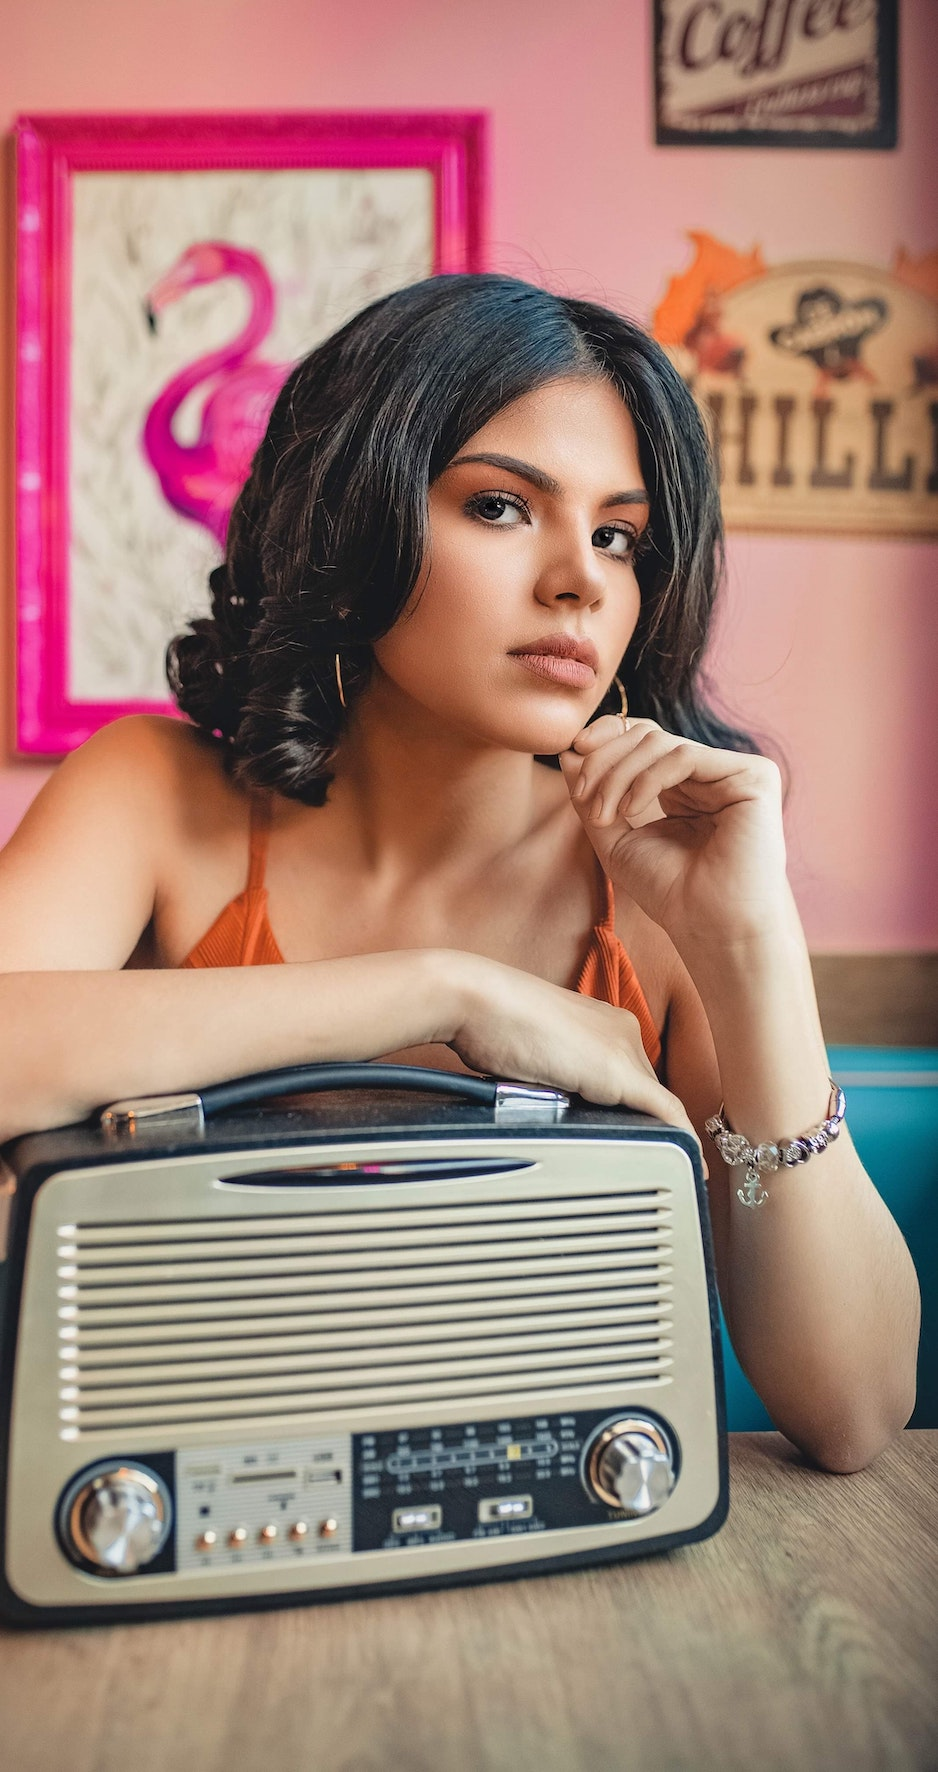 woman with vintage radio